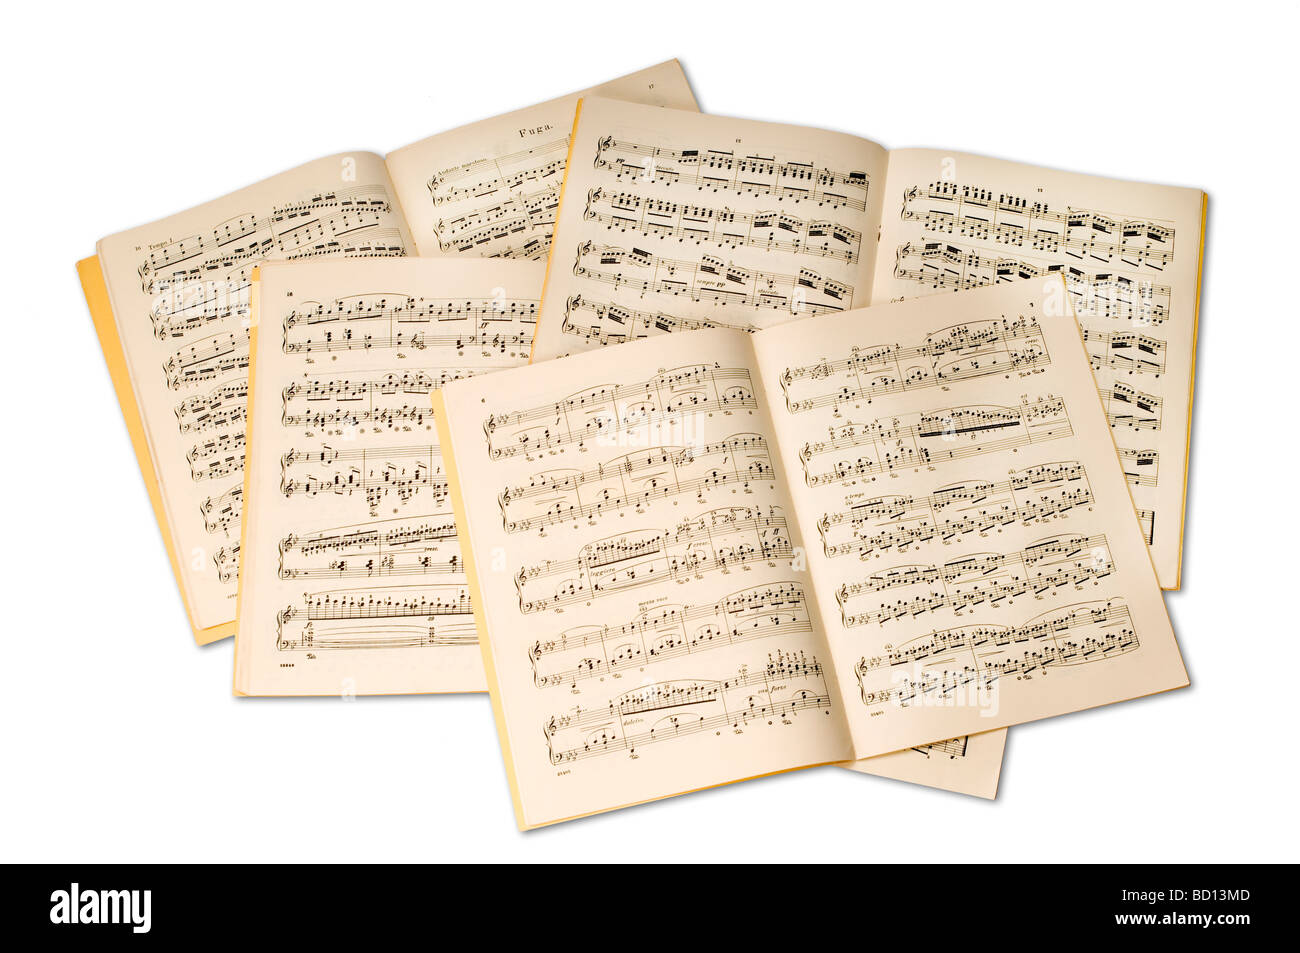 variety of sheet music - Stock Image